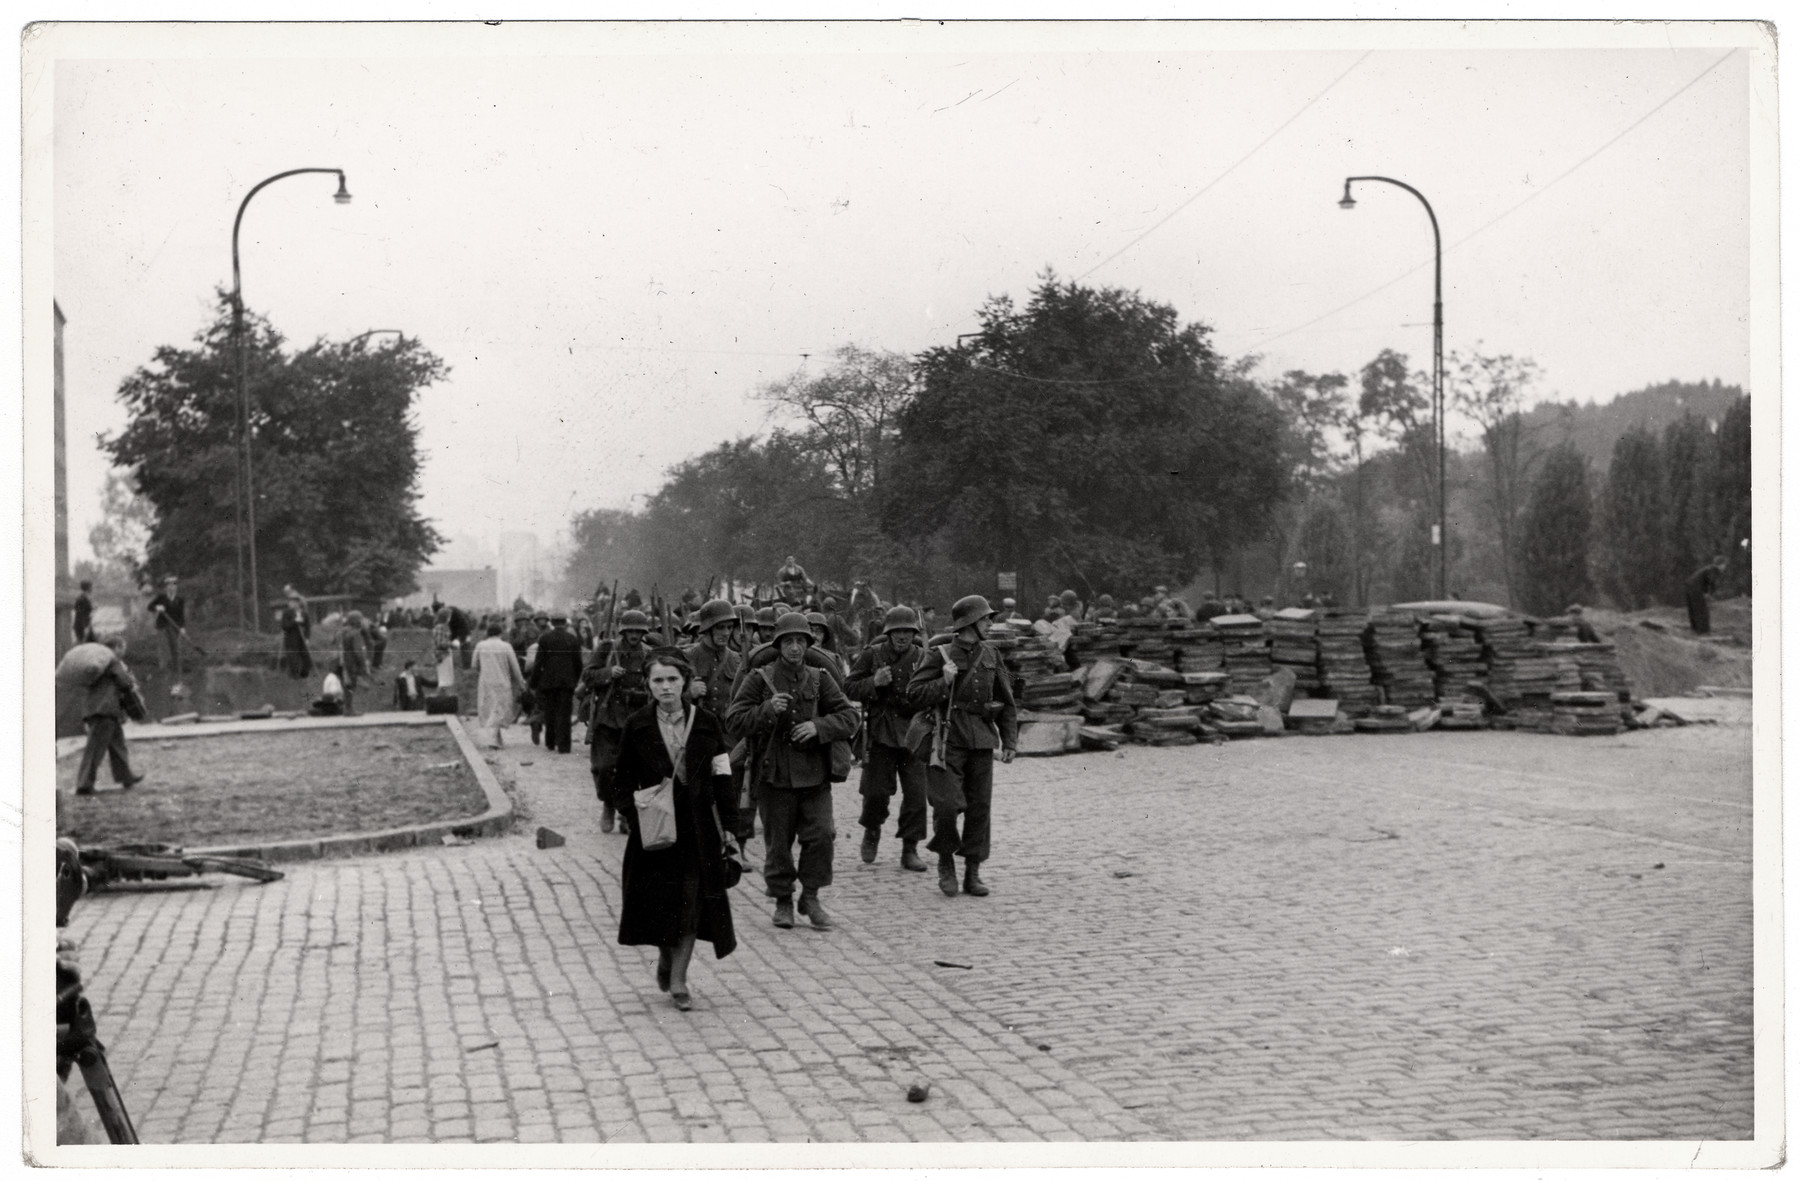 Polish civilians and soldier walk through defenses built during the Siege of Warsaw to slow the advance of the German army.